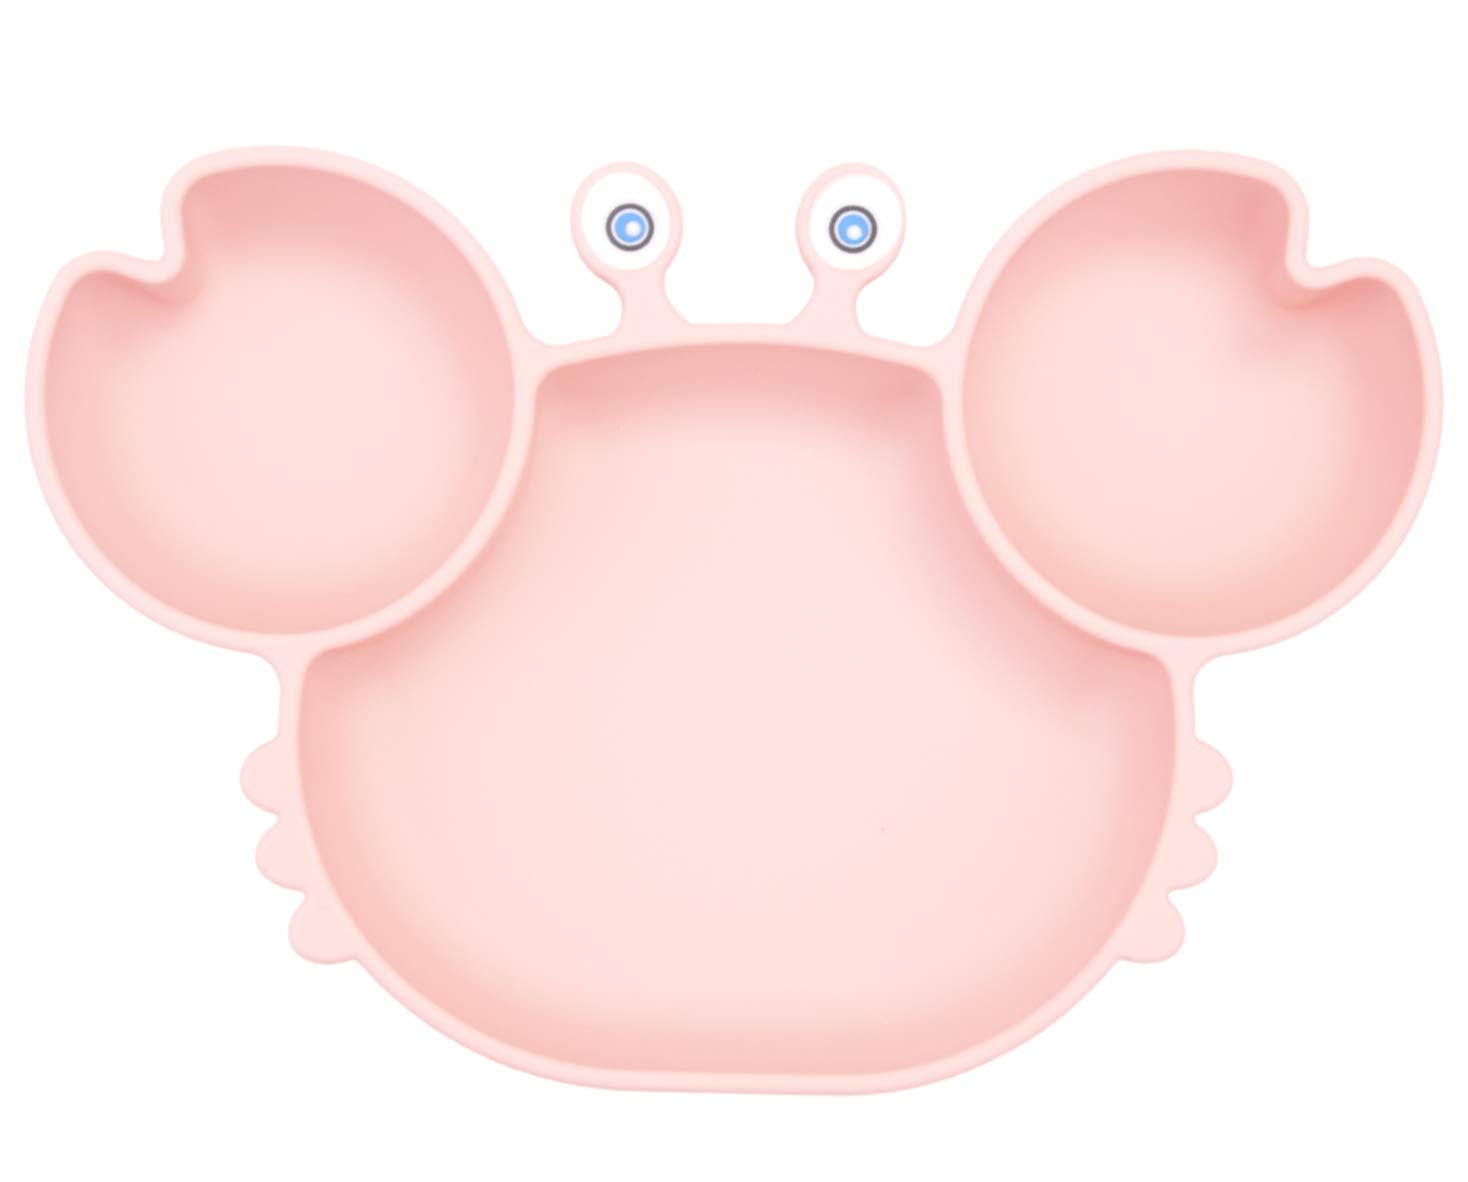 Silicone Suction Plate for Toddlers - Self Feeding Training Divided Plate Dish and Bowl for Baby and Toddler, Fits for Most Highchairs Trays, BPA Free Microwave Dishwasher Safe (Crab-Pink)